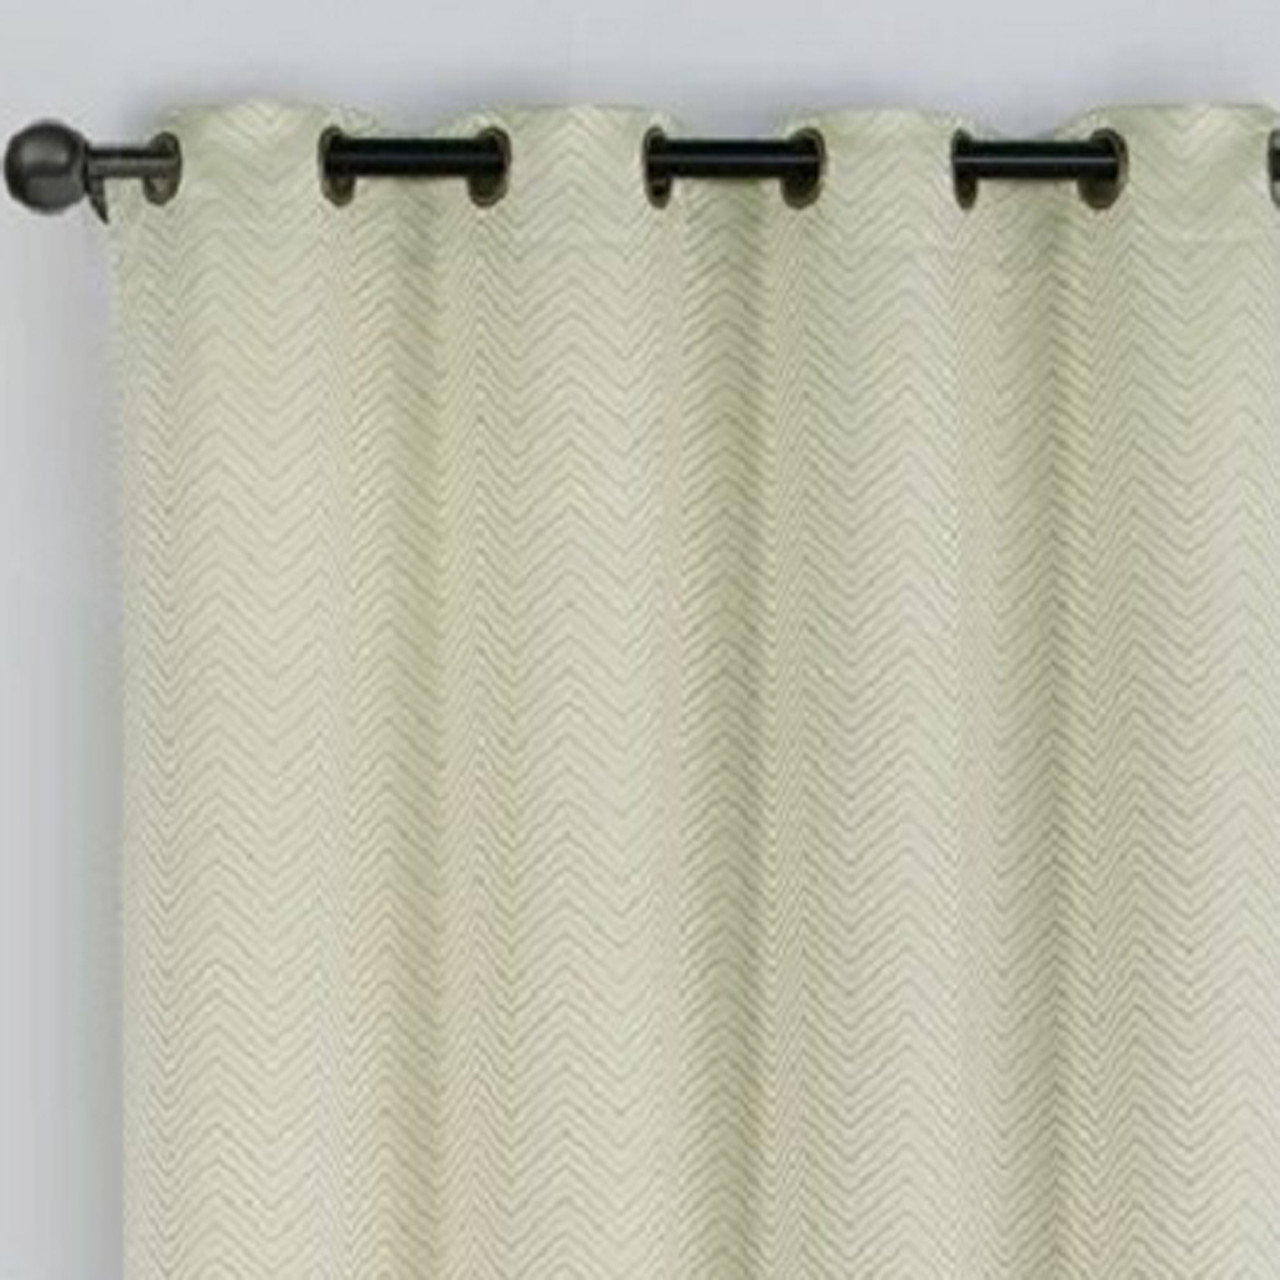 Chevron Embroidered Curtains Grommet Top Jacquard Panels Set Of 2 Closeup Sage